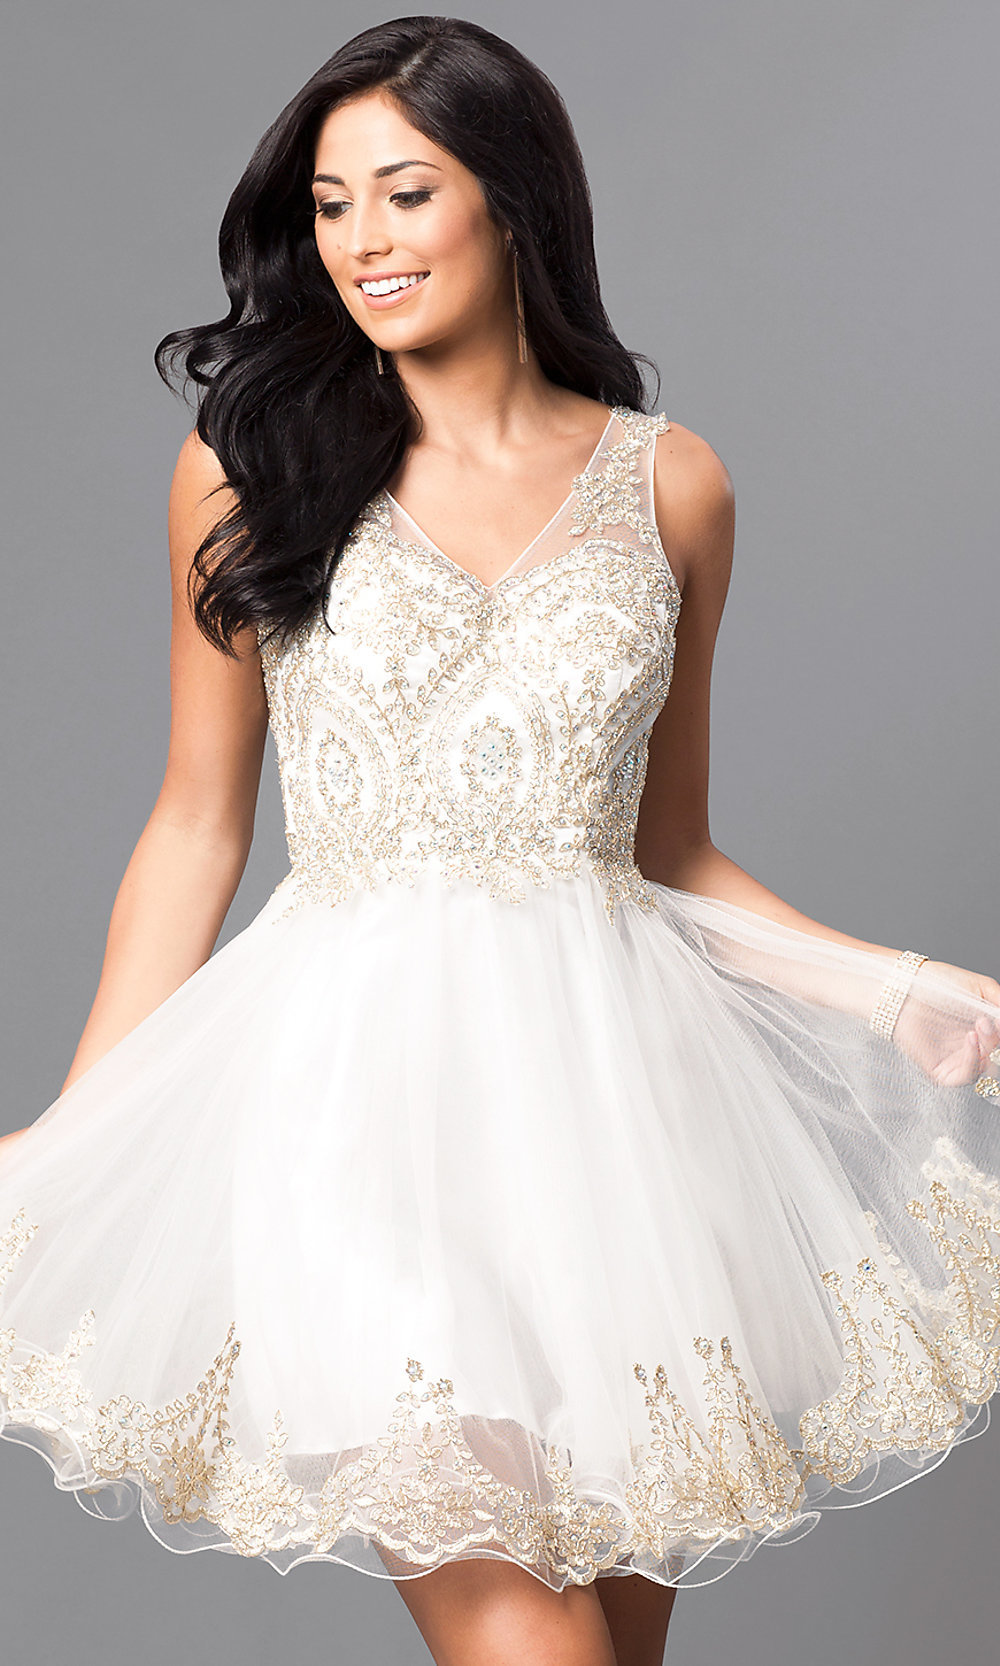 Rehearsal Dinner Dresses in White and Ivory - PromGirl